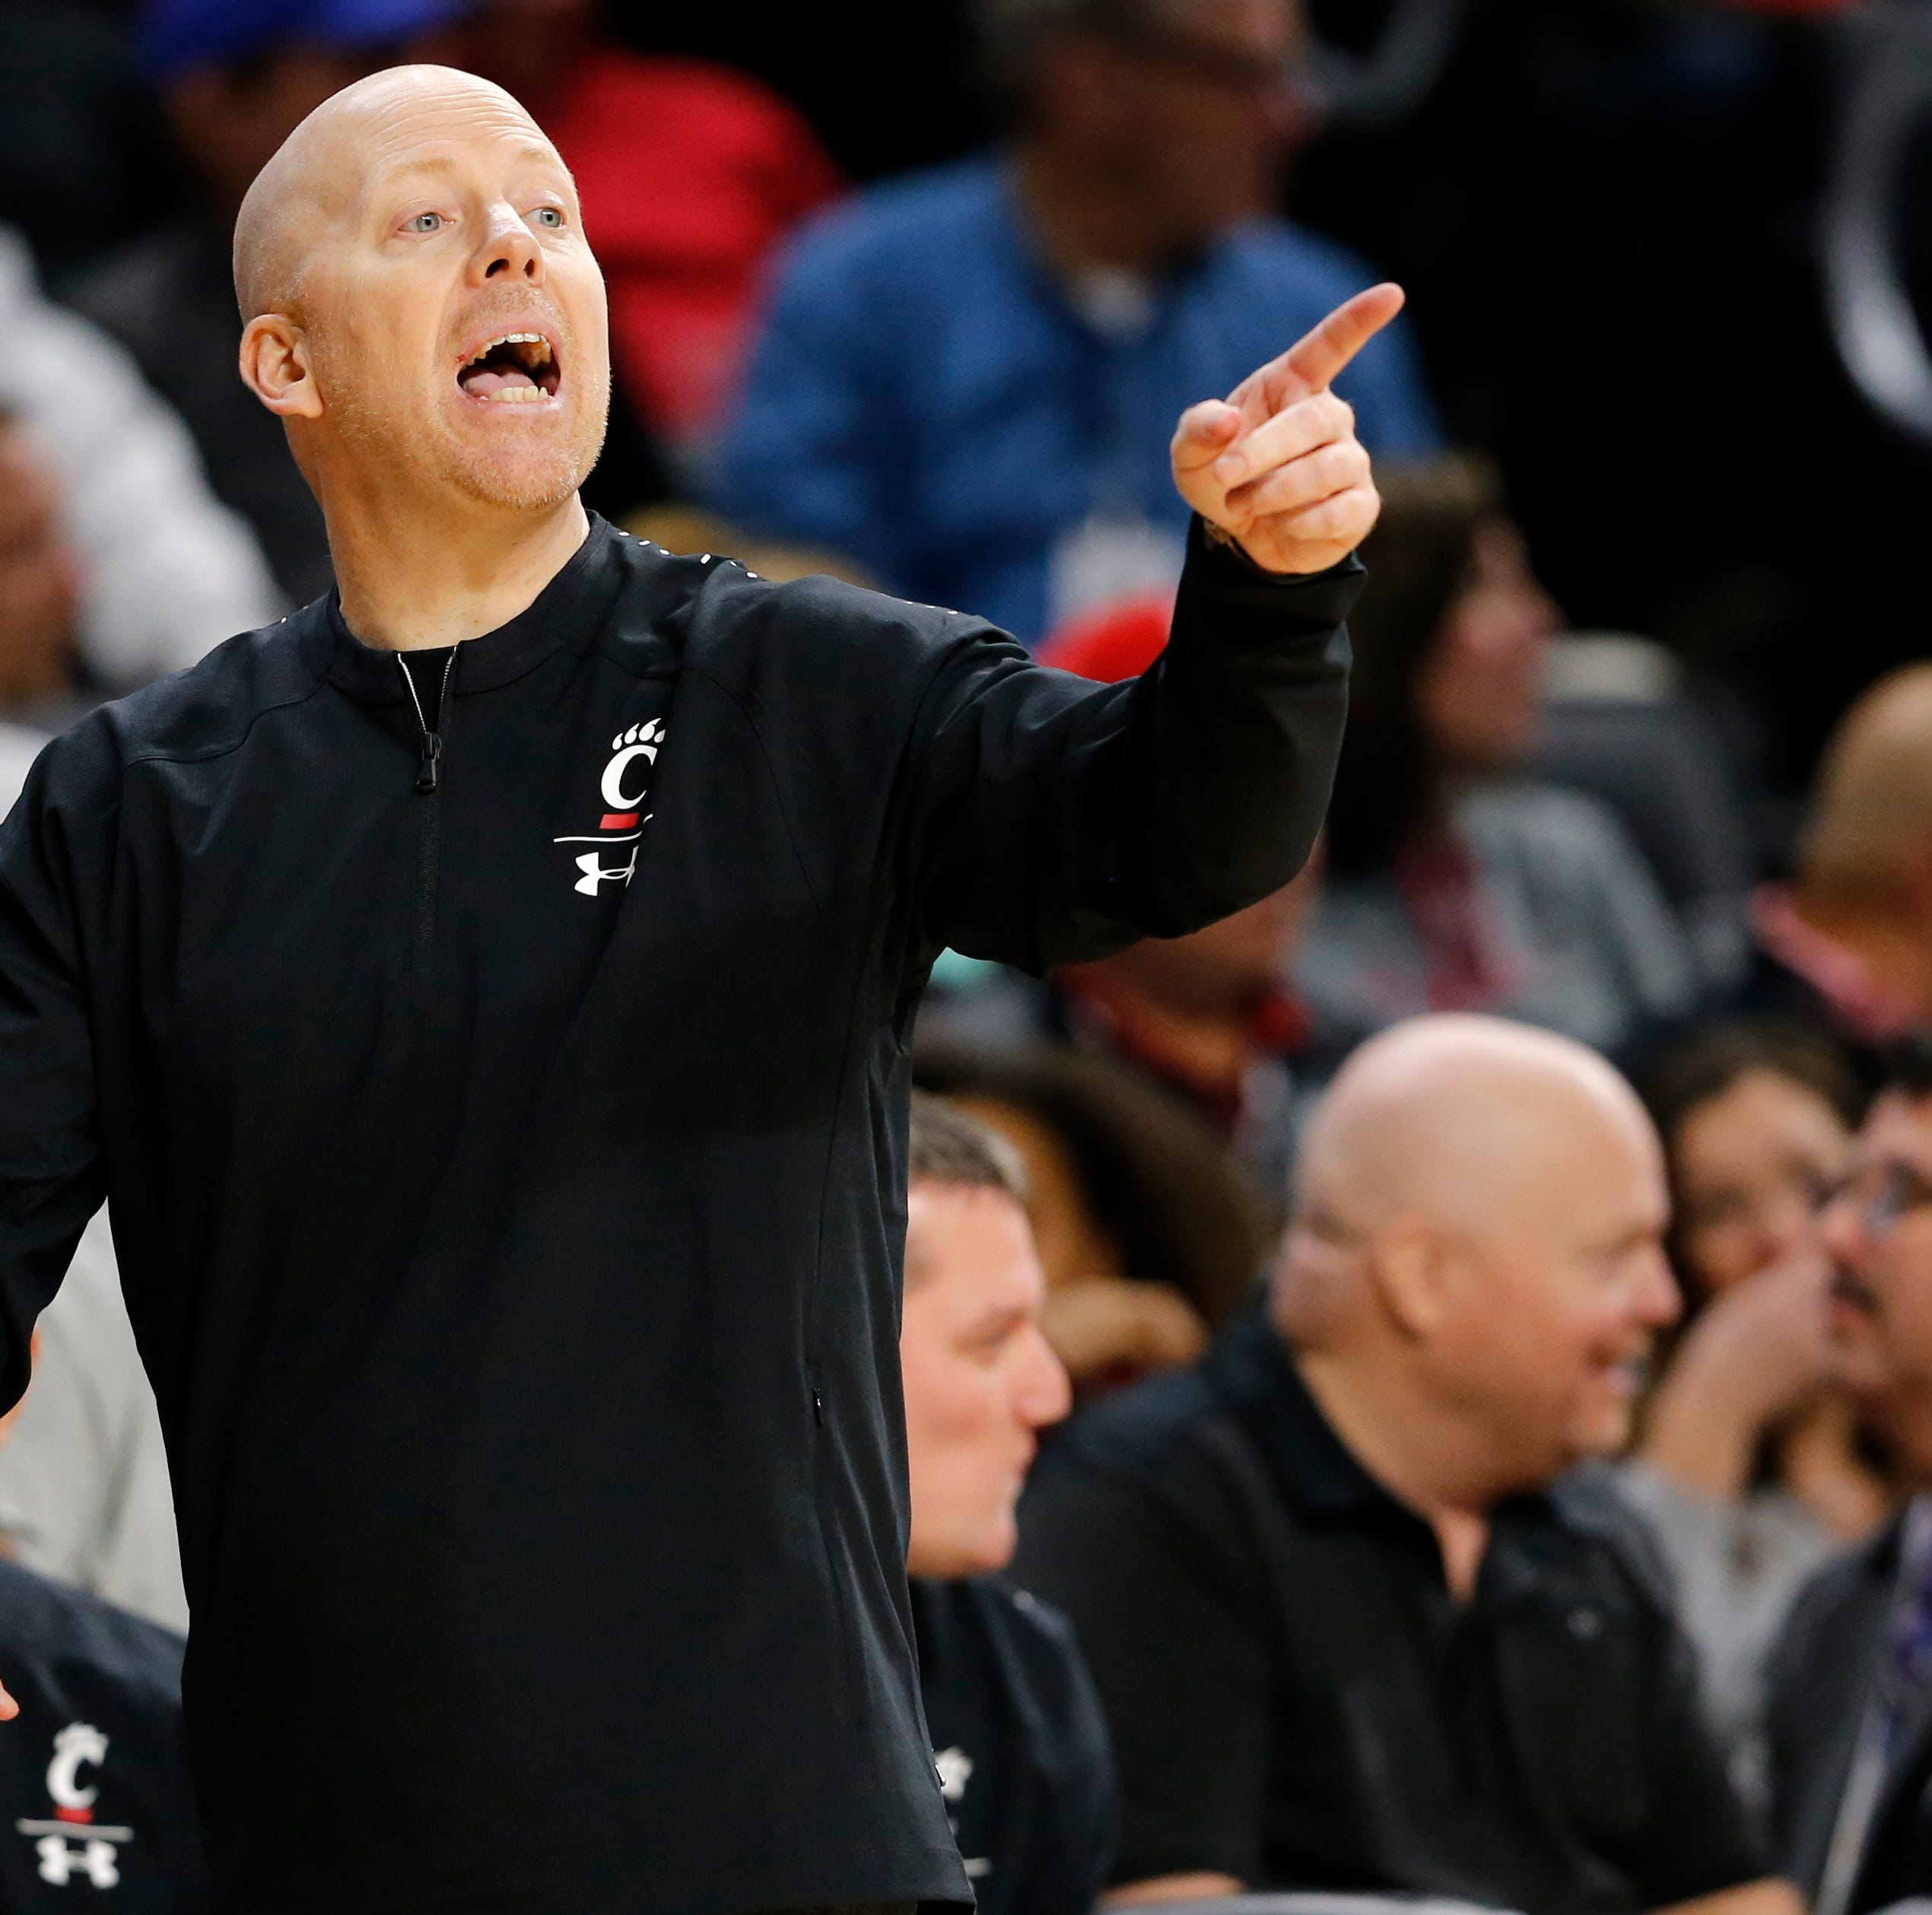 Paul Daugherty: Thank you for bringing University of Cincinnati basketball back, Mick Cronin